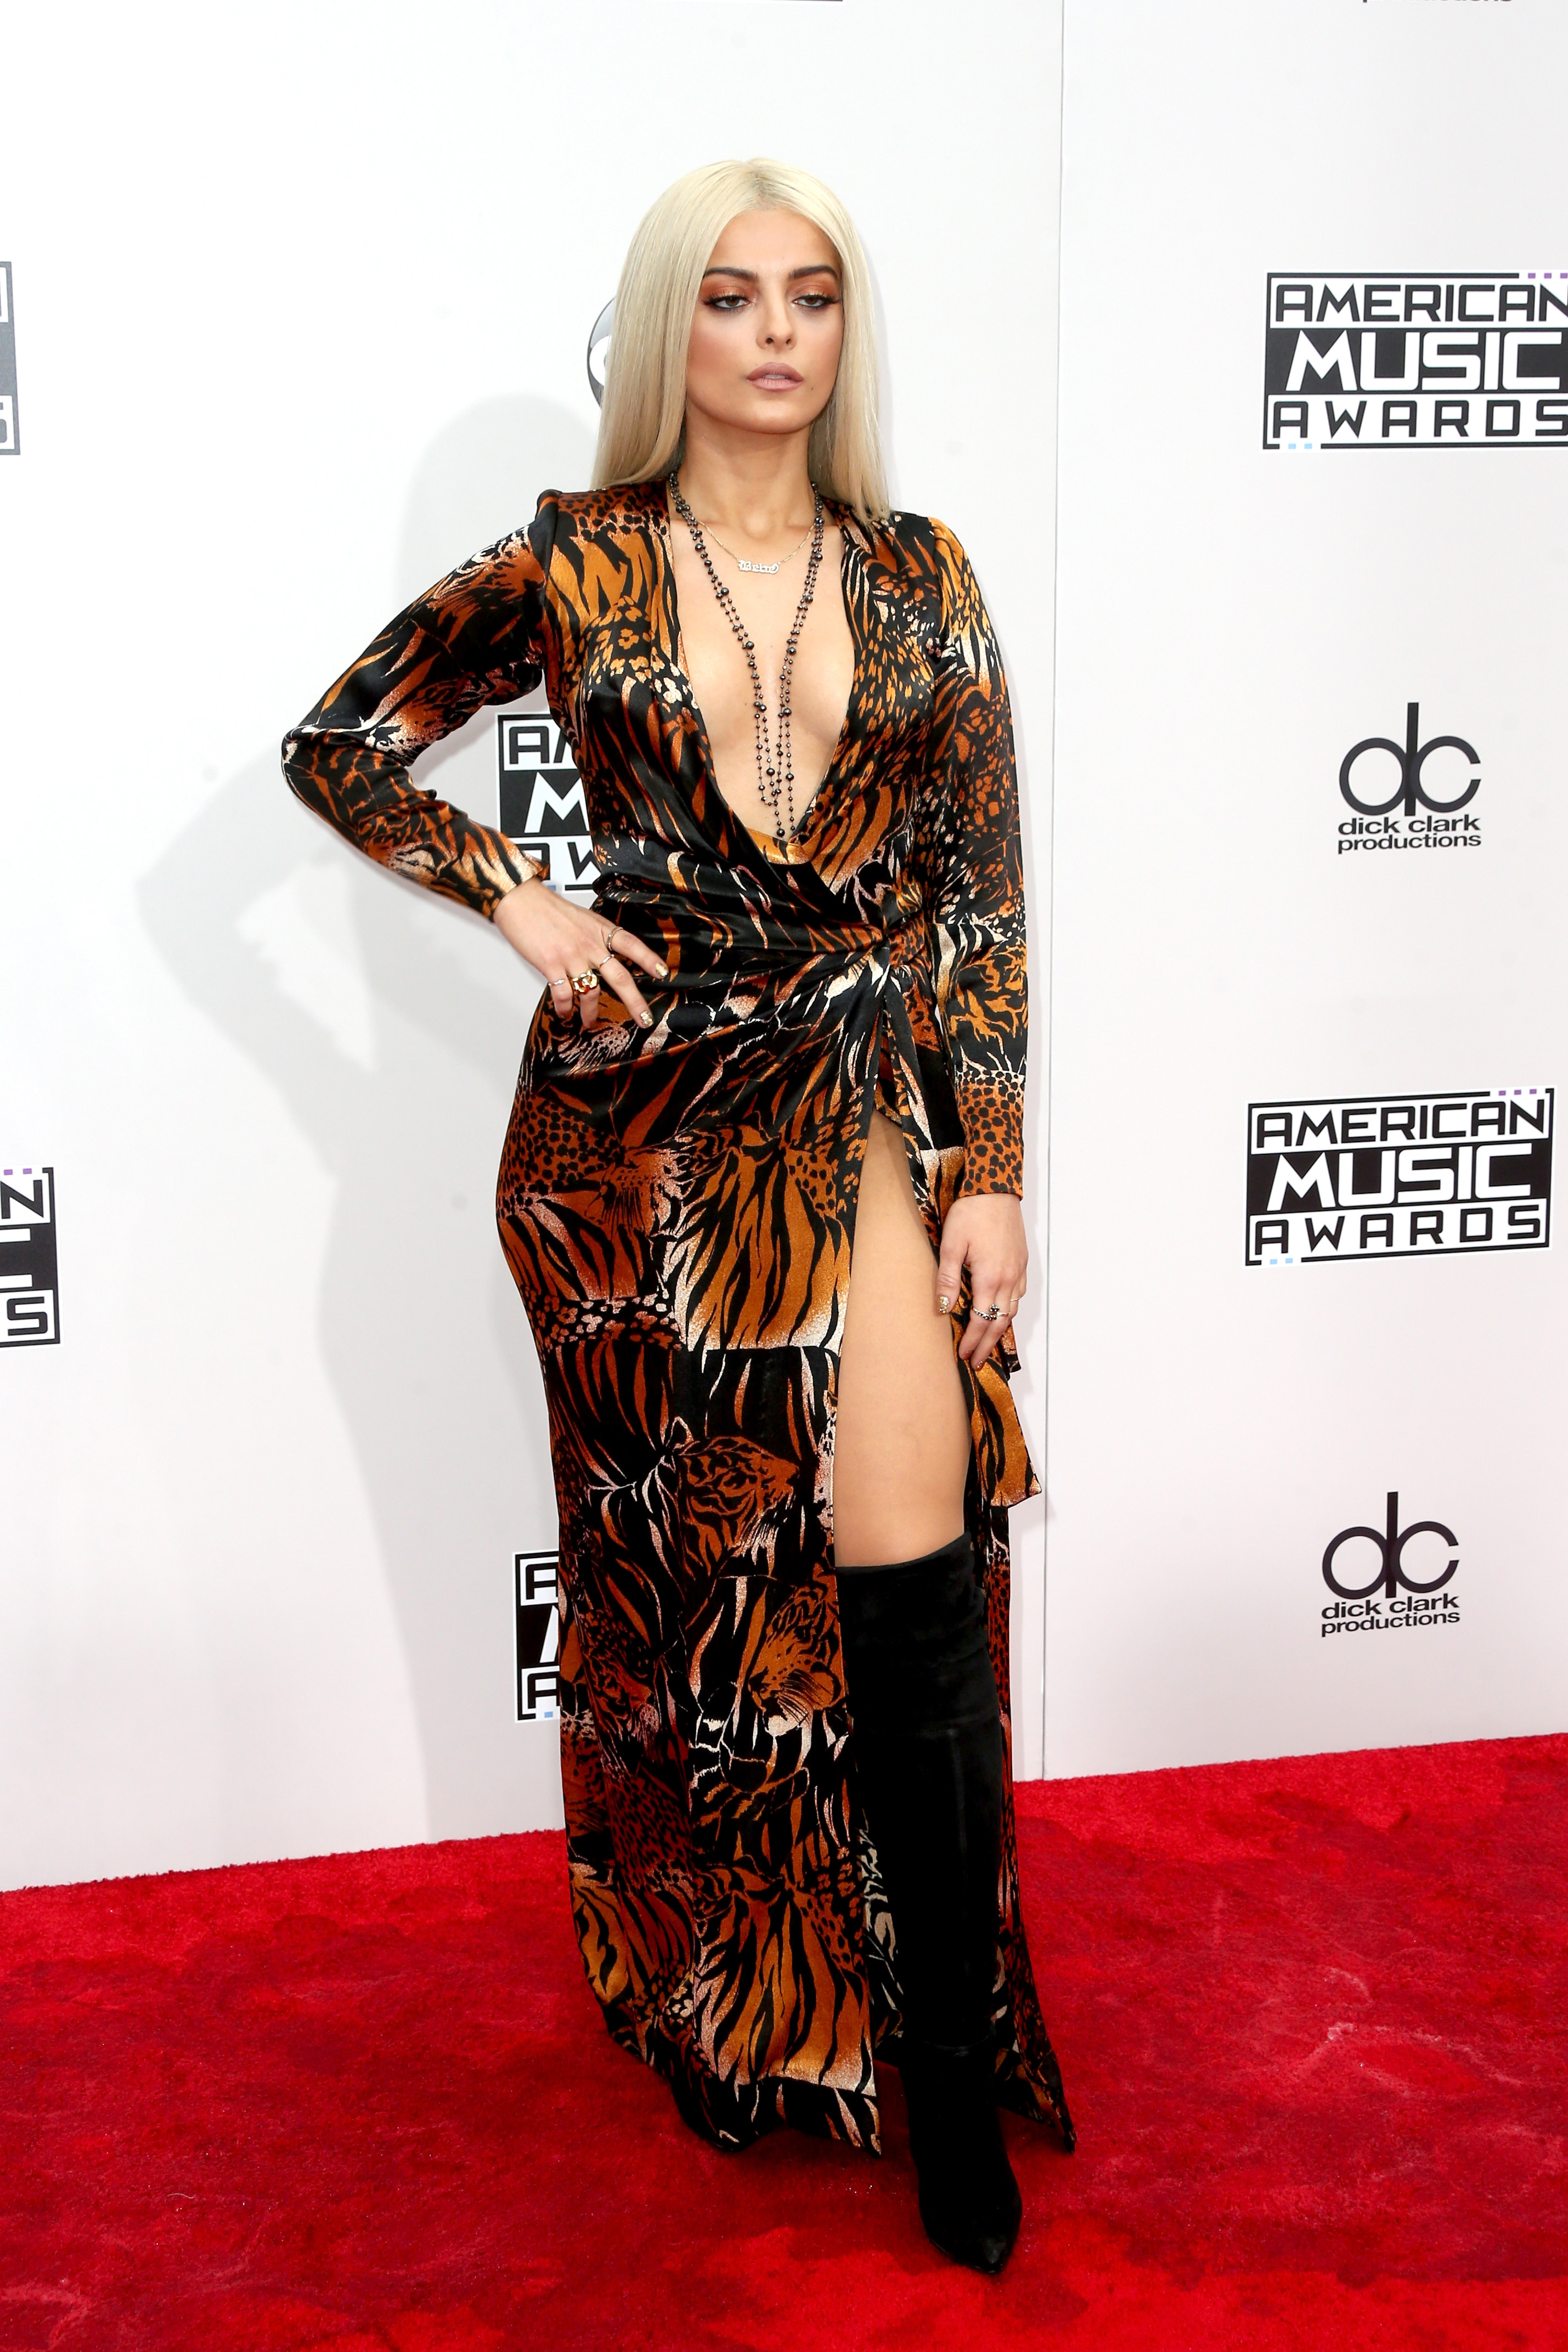 LOS ANGELES, CA - NOVEMBER 20: Singer Bebe Rexha attends the 2016 American Music Awards at Microsoft Theater on November 20, 2016 in Los Angeles, California. (Photo by Frederick M. Brown/Getty Images)